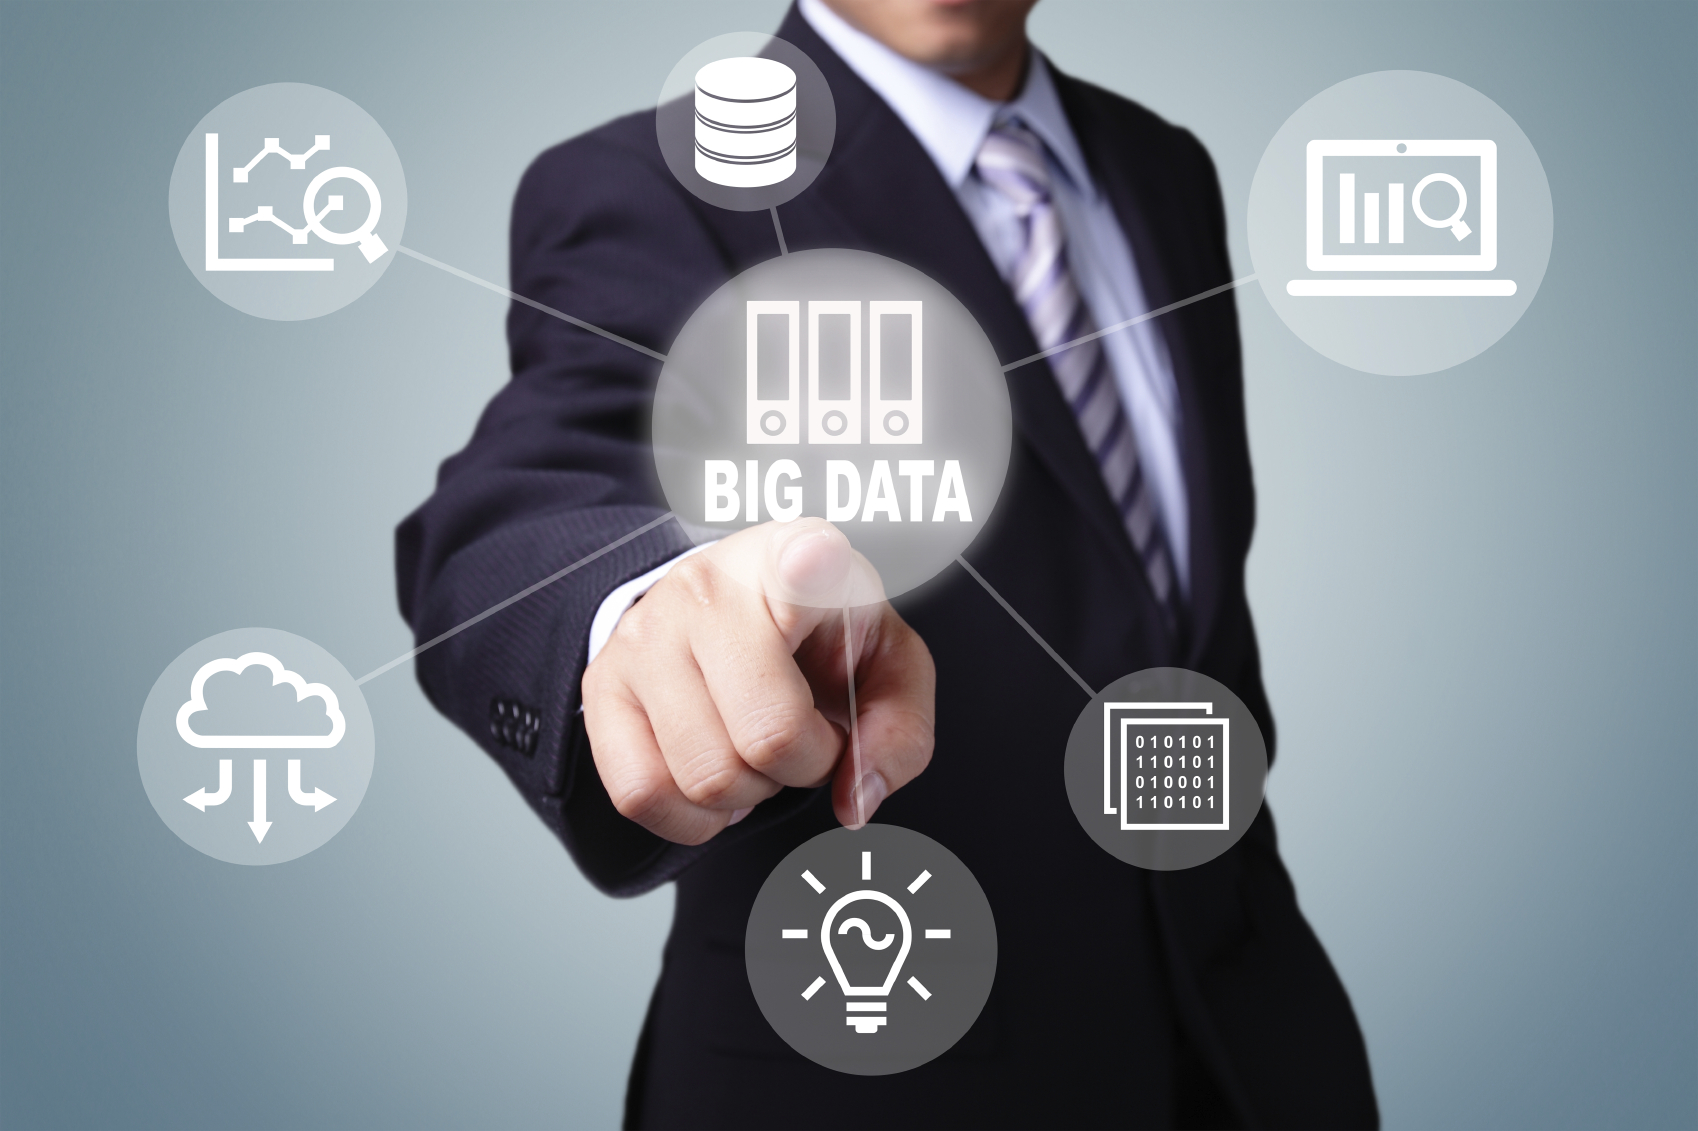 HR Big Data Analytics, PonyWang, iStock, September 2014